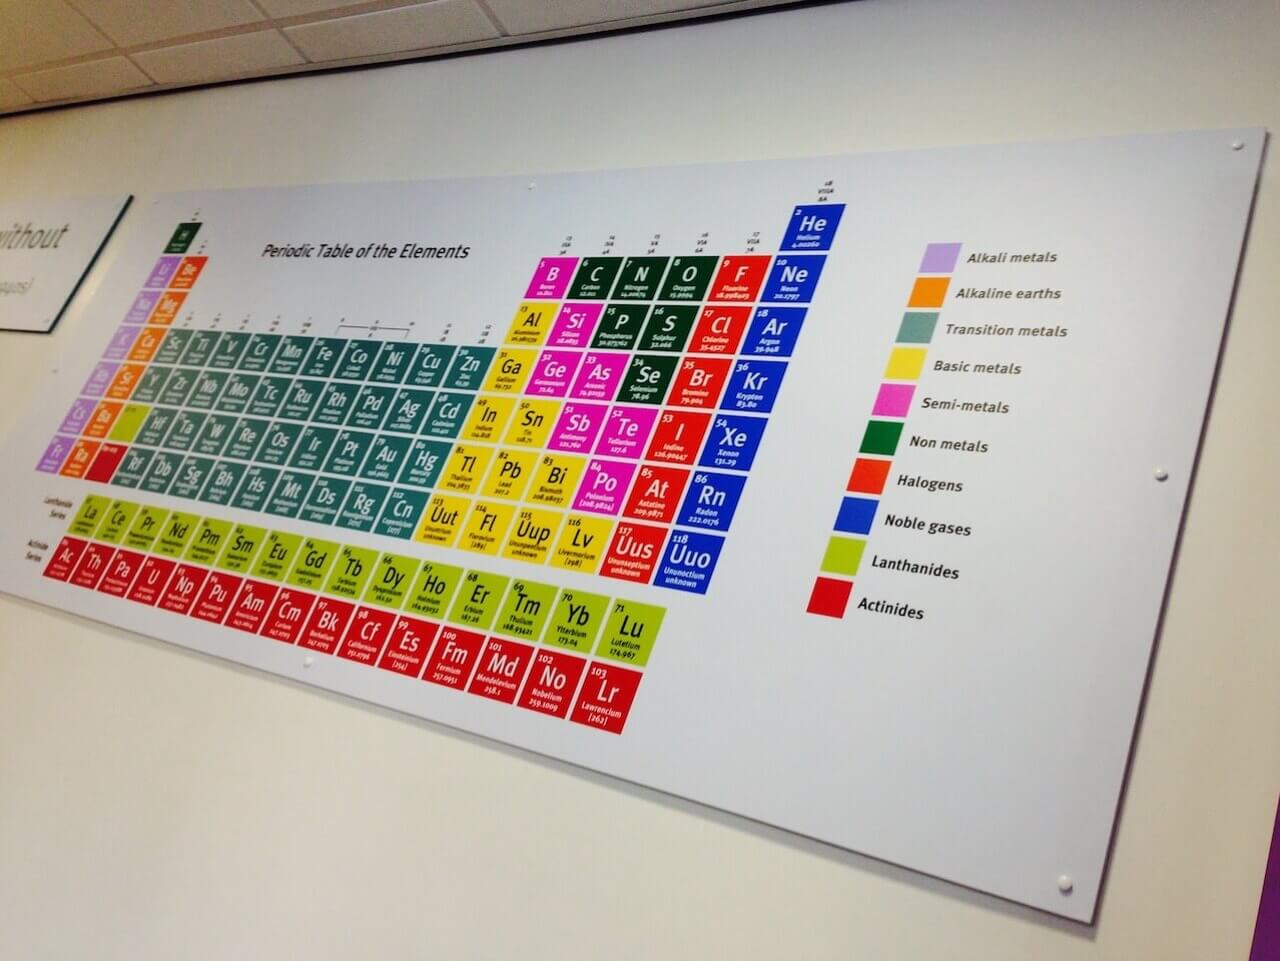 A wall mounted supergraphic of the periodic table